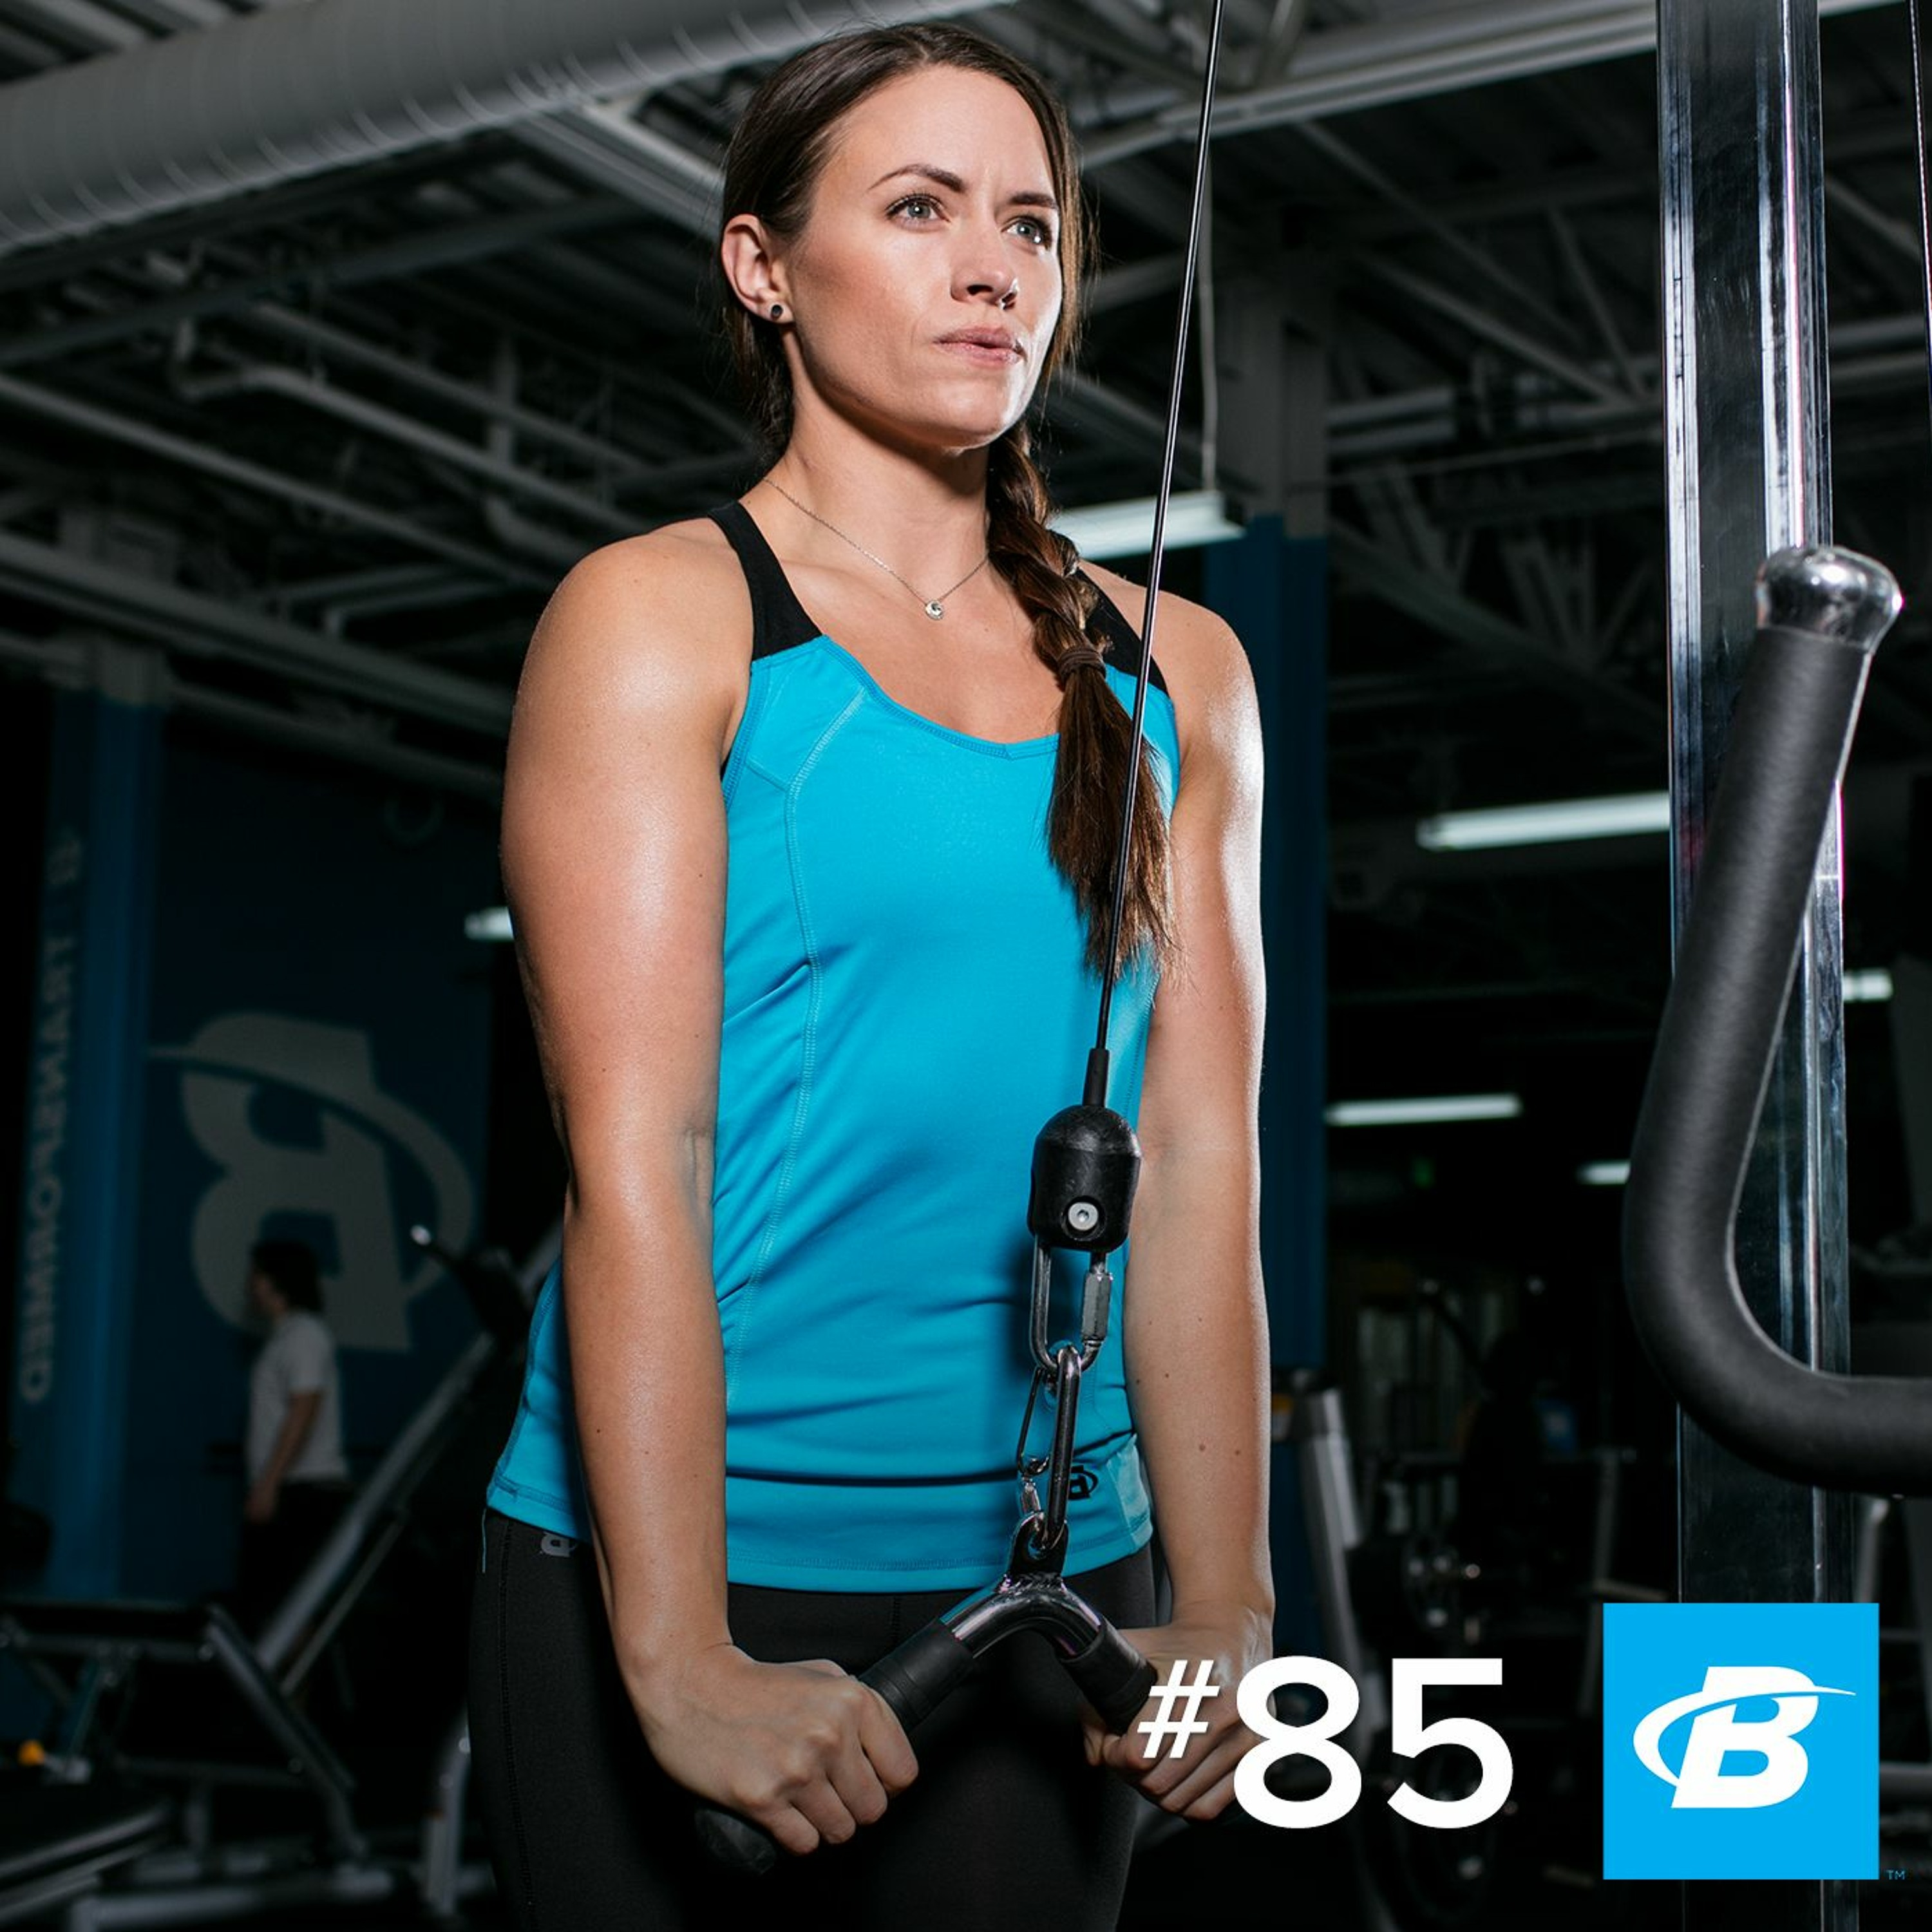 Episode 85 - Robyn Koolen: How Simple Little Changes Led to a Major Transformation